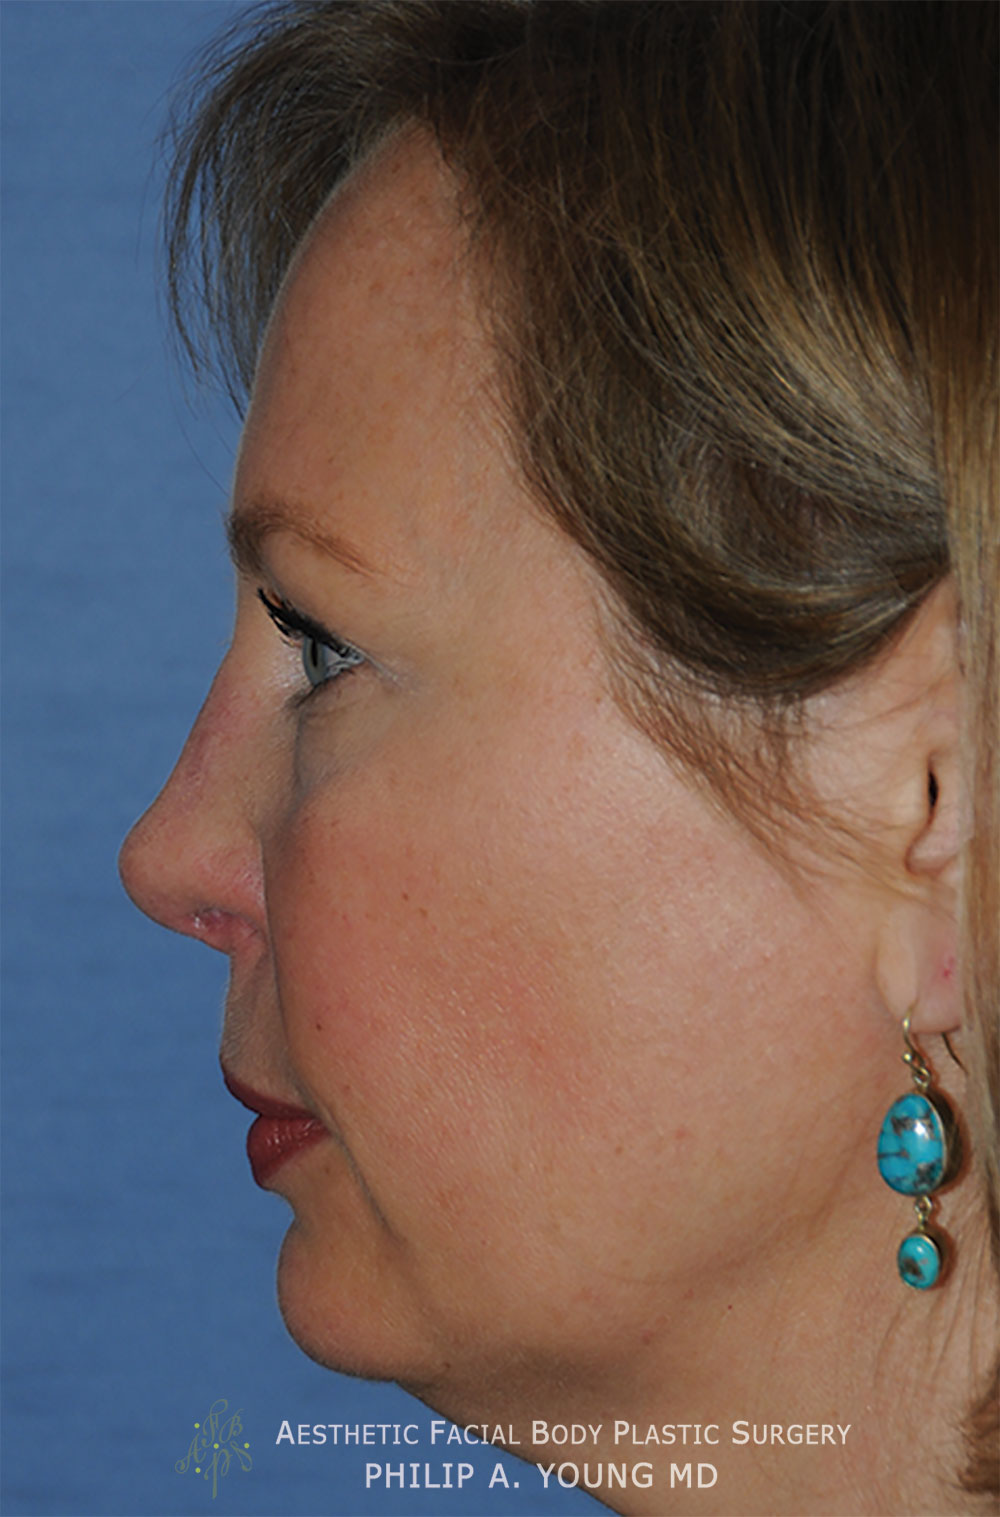 After Revision Rhinoplasty for Crooked Tip, Crooked Nasal Bridge, Nose Bridge Dorsal Irregularities, Hook & Droopy Nasal Tip, Retracted Alae Nostrils Left Side View.